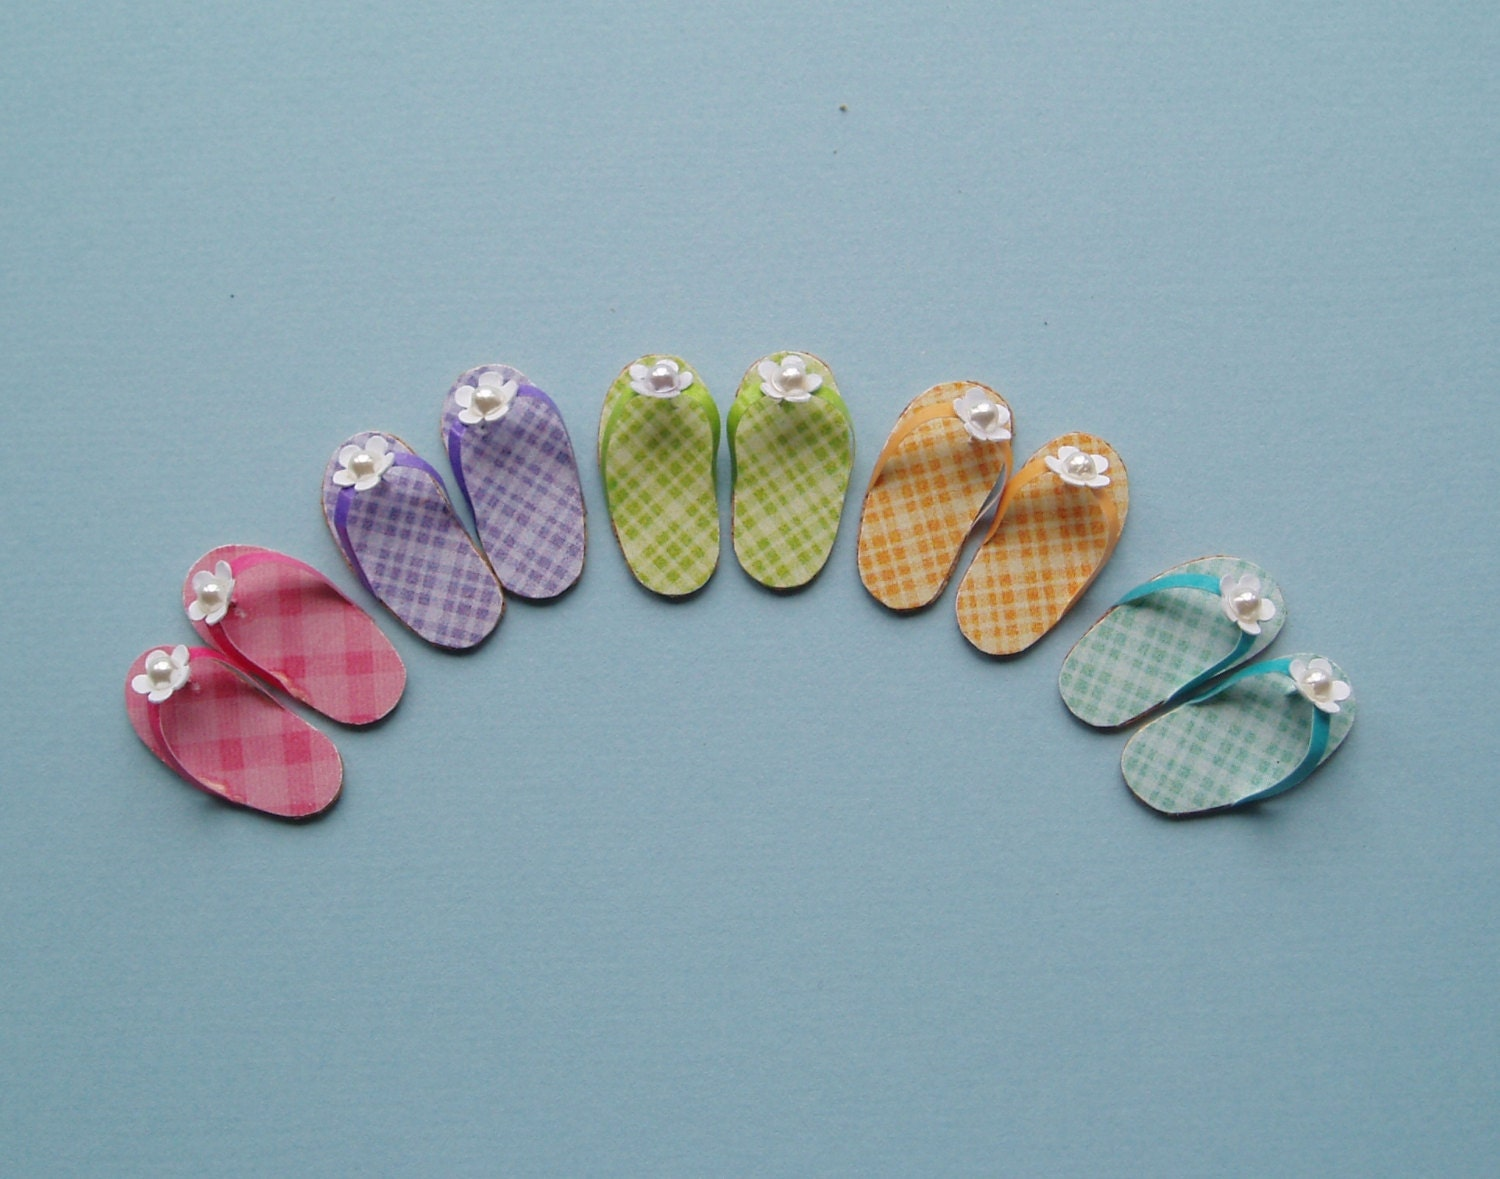 One pair of Daisy Flip flops from a Choice of 5 Colours  112 or 112 Scale Dollhouse Miniature Pink Lilac Lime Green Turquoise Yellow